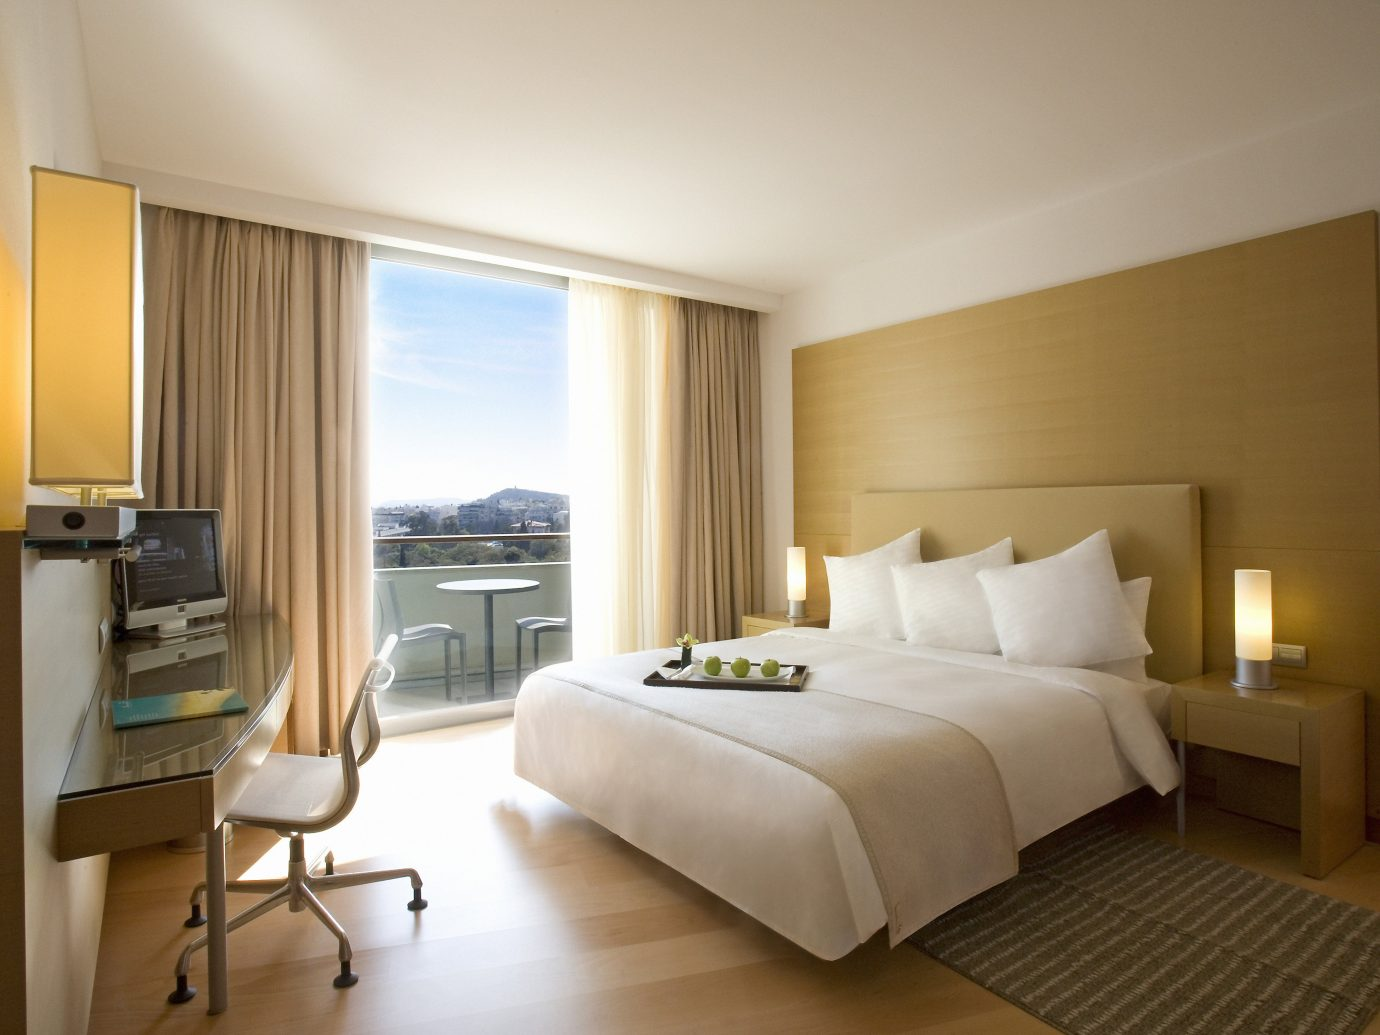 BEDROOM at Hilton Athens